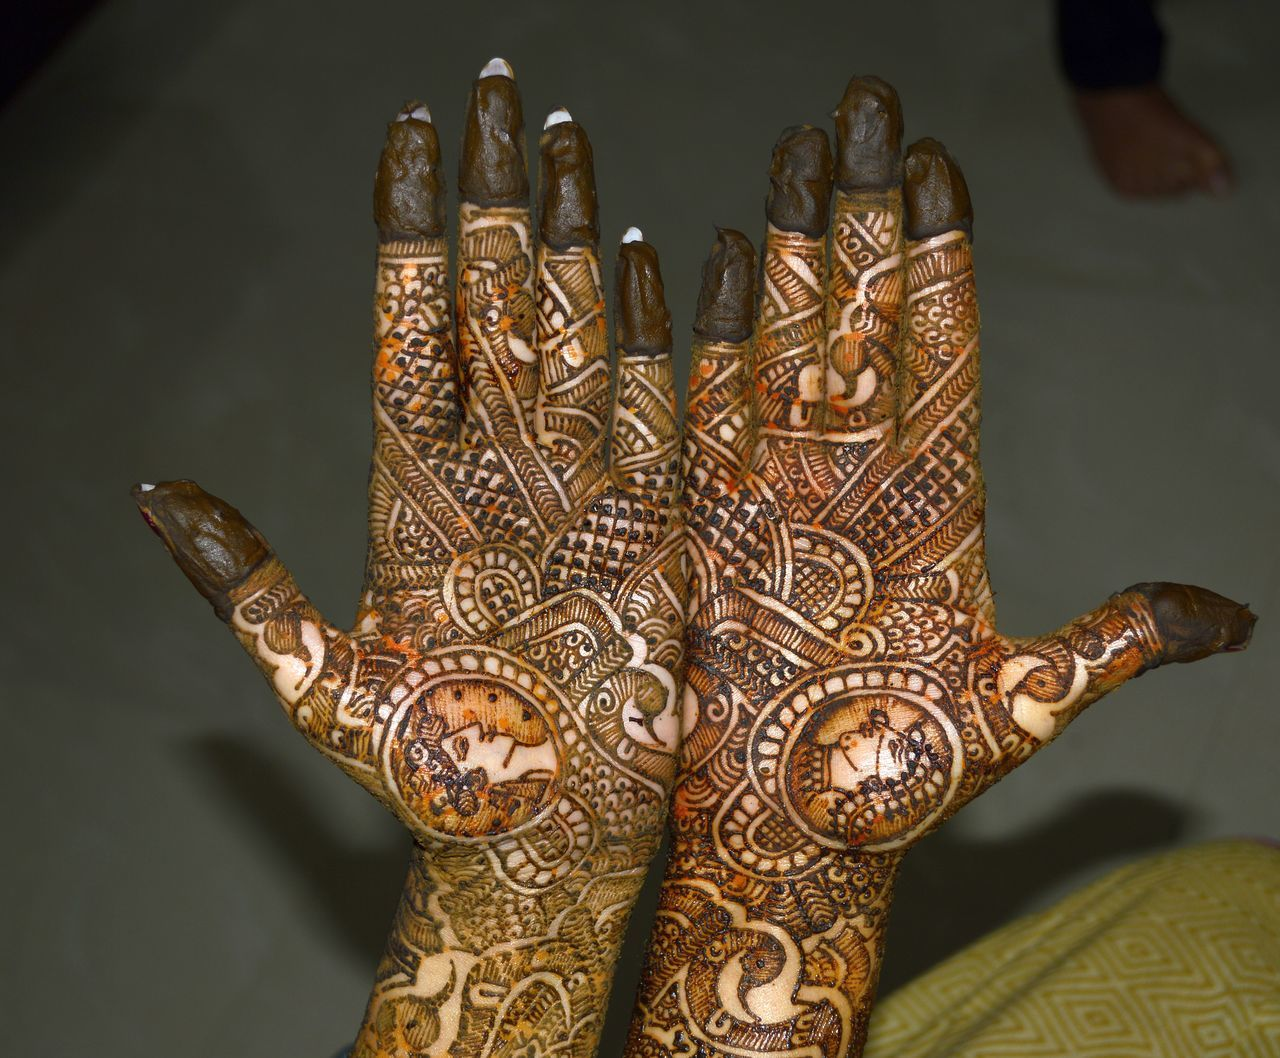 Mehendi art Beauty Design Fingers Hands King Mehendi Art Queen Thumbs